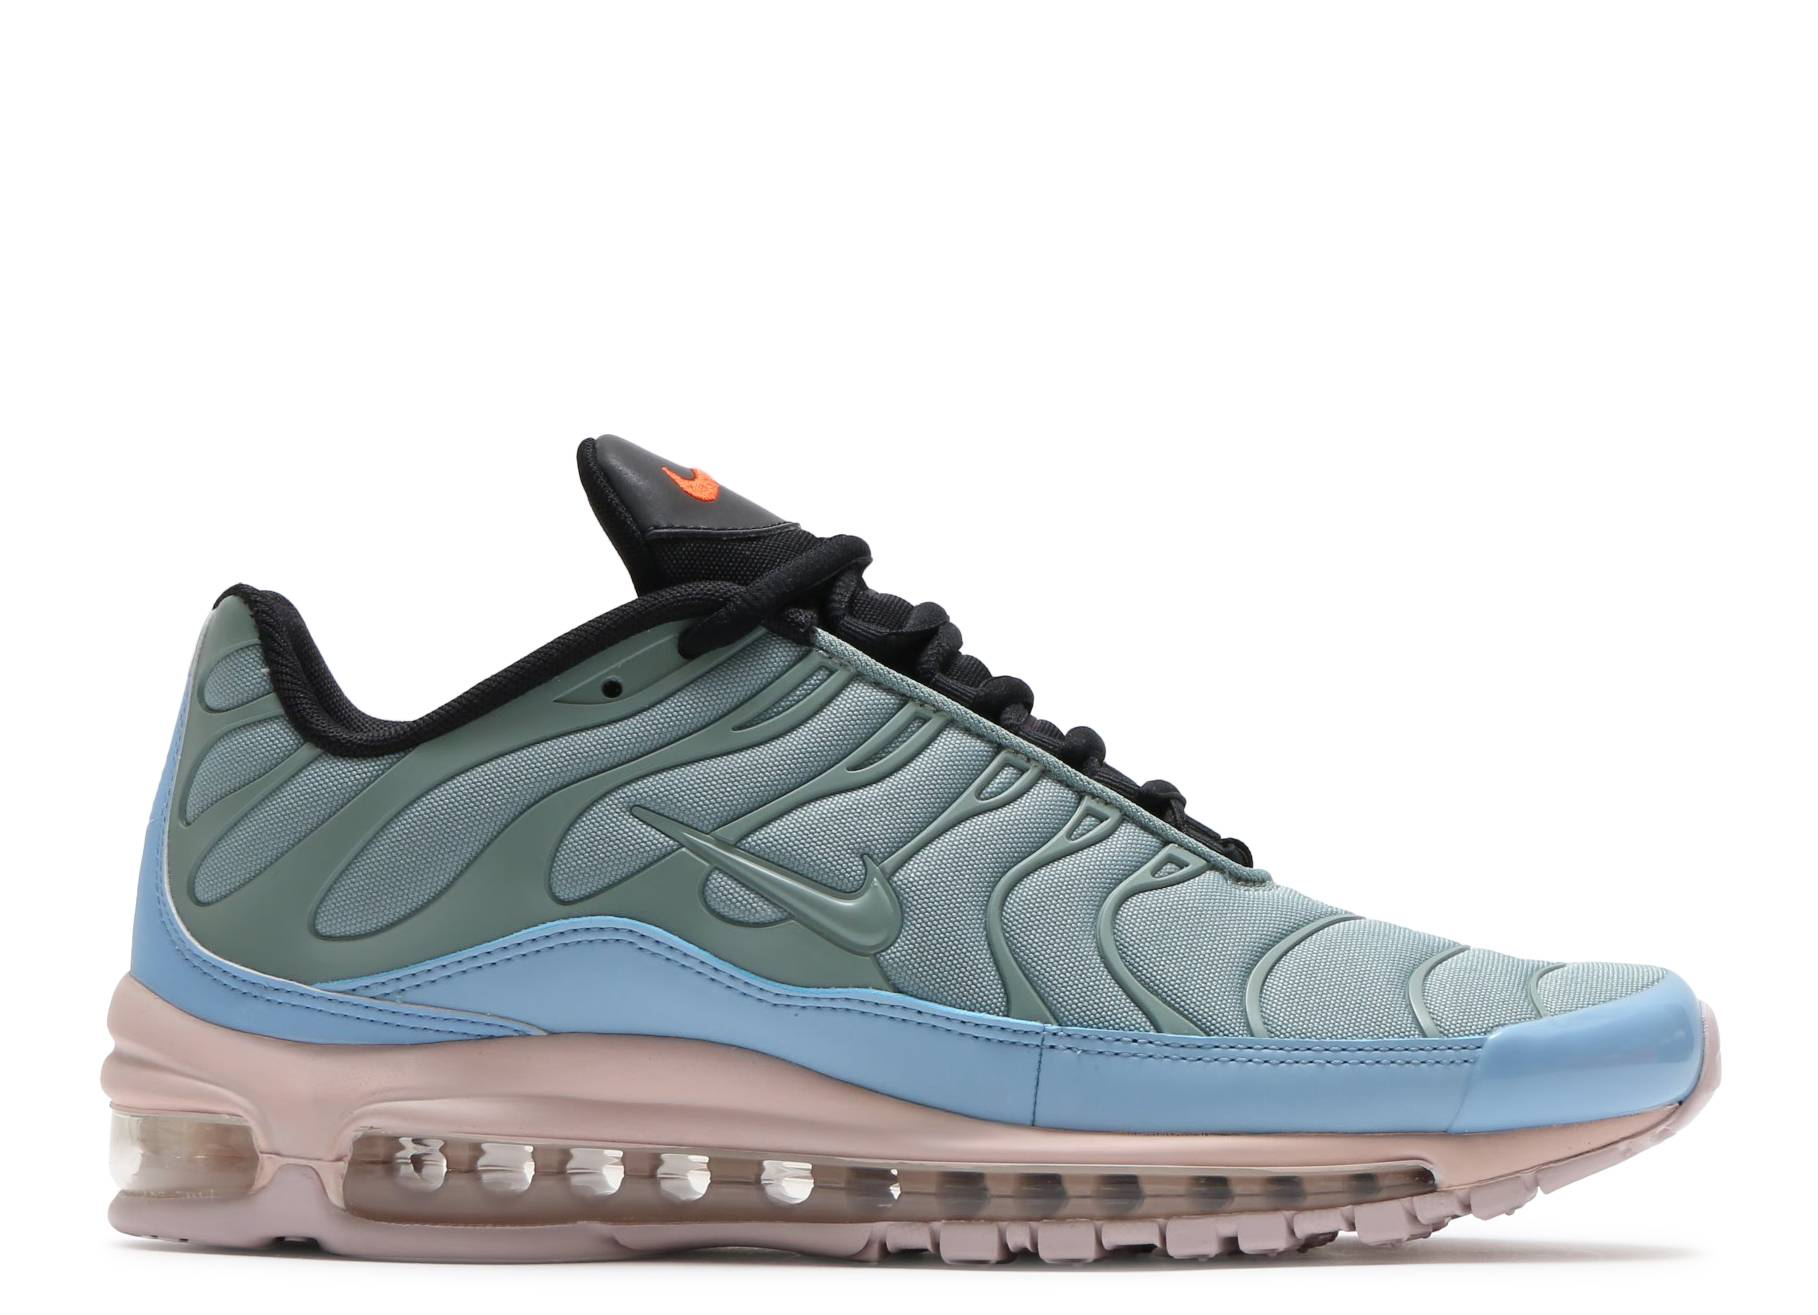 4a8dcd5d7c AIR MAX 97 / PLUS - Nike - ah8144 300 - mica green/barely rose-leche ...